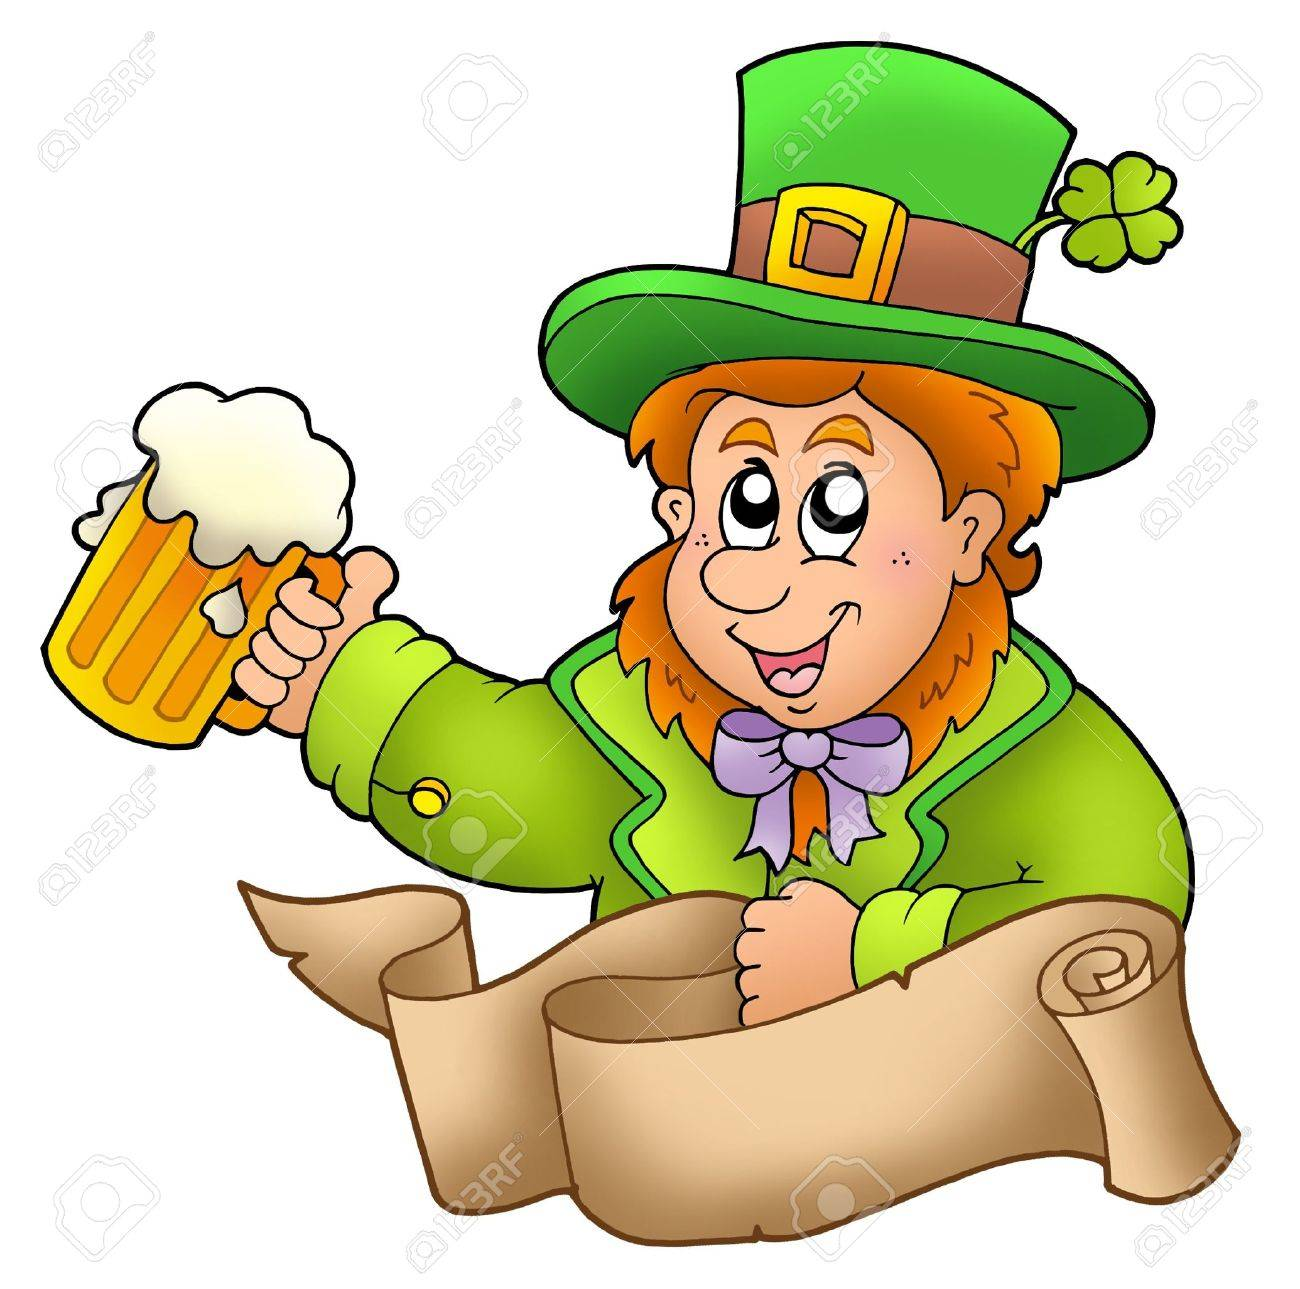 Banner with leprechaun holding beer - color illustration. Stock Illustration - 6520477